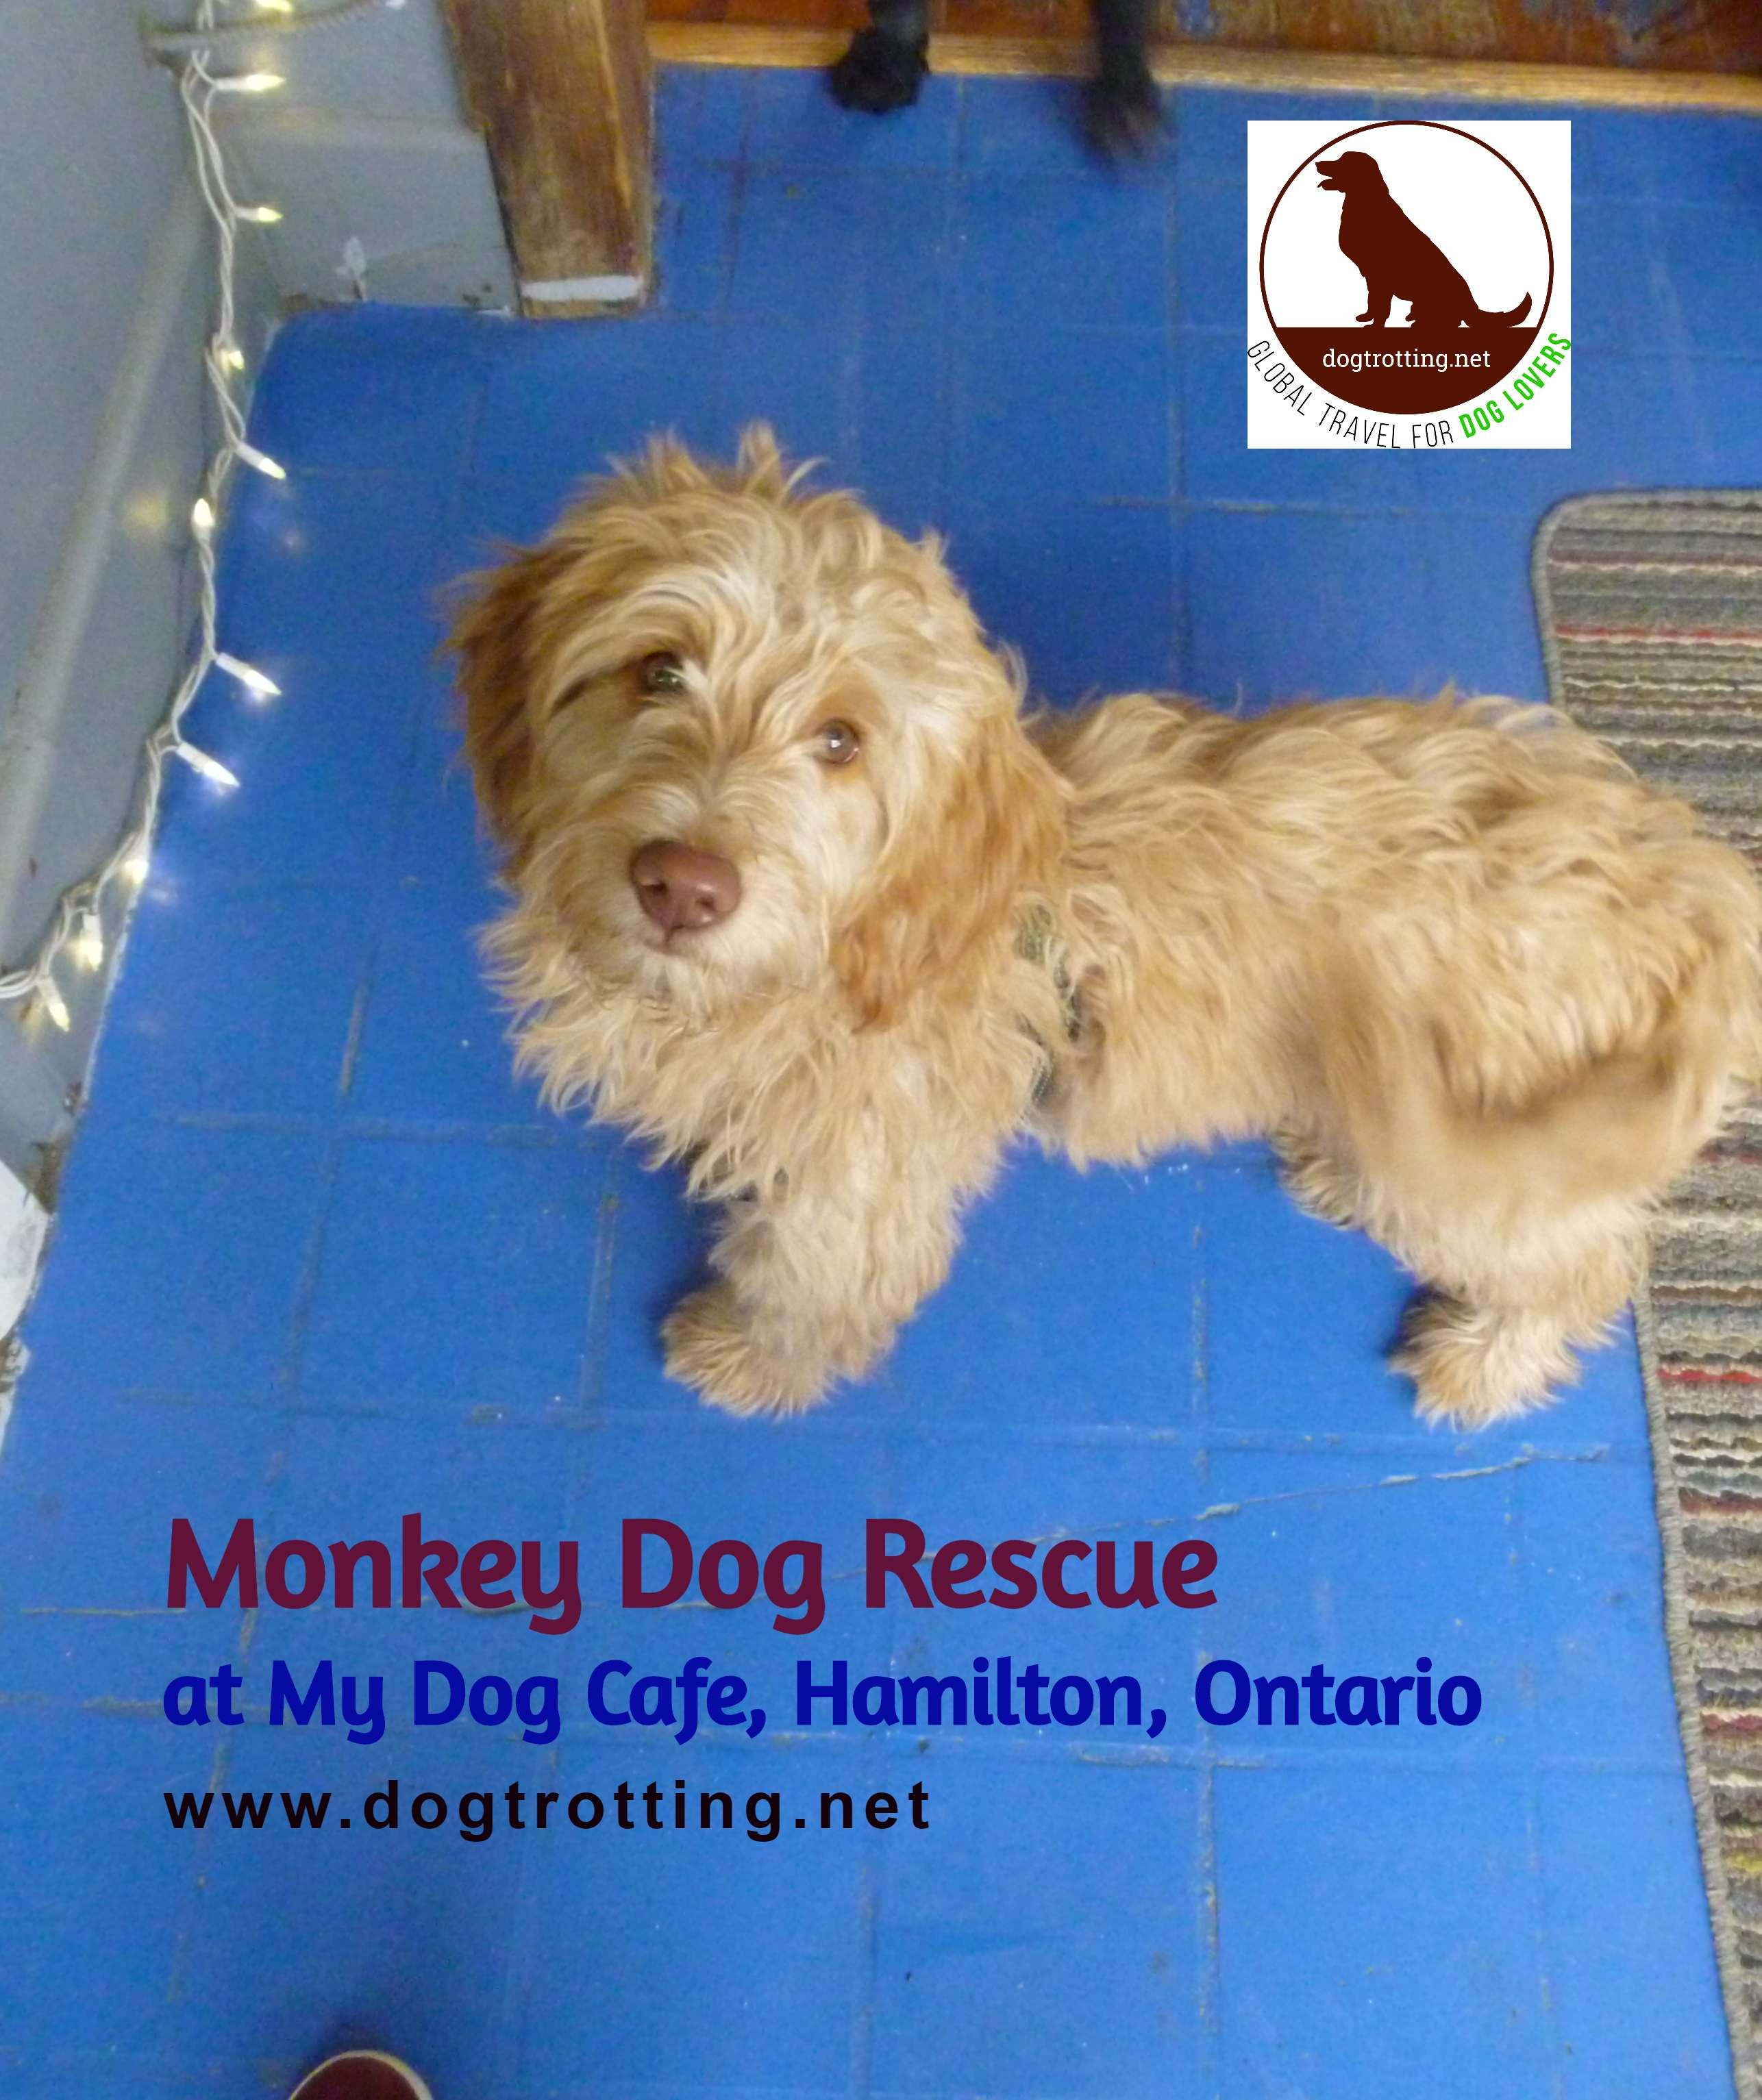 Update: Holiday Online Auction for Monkey Dog Rescue – Don't Shop, Bid!